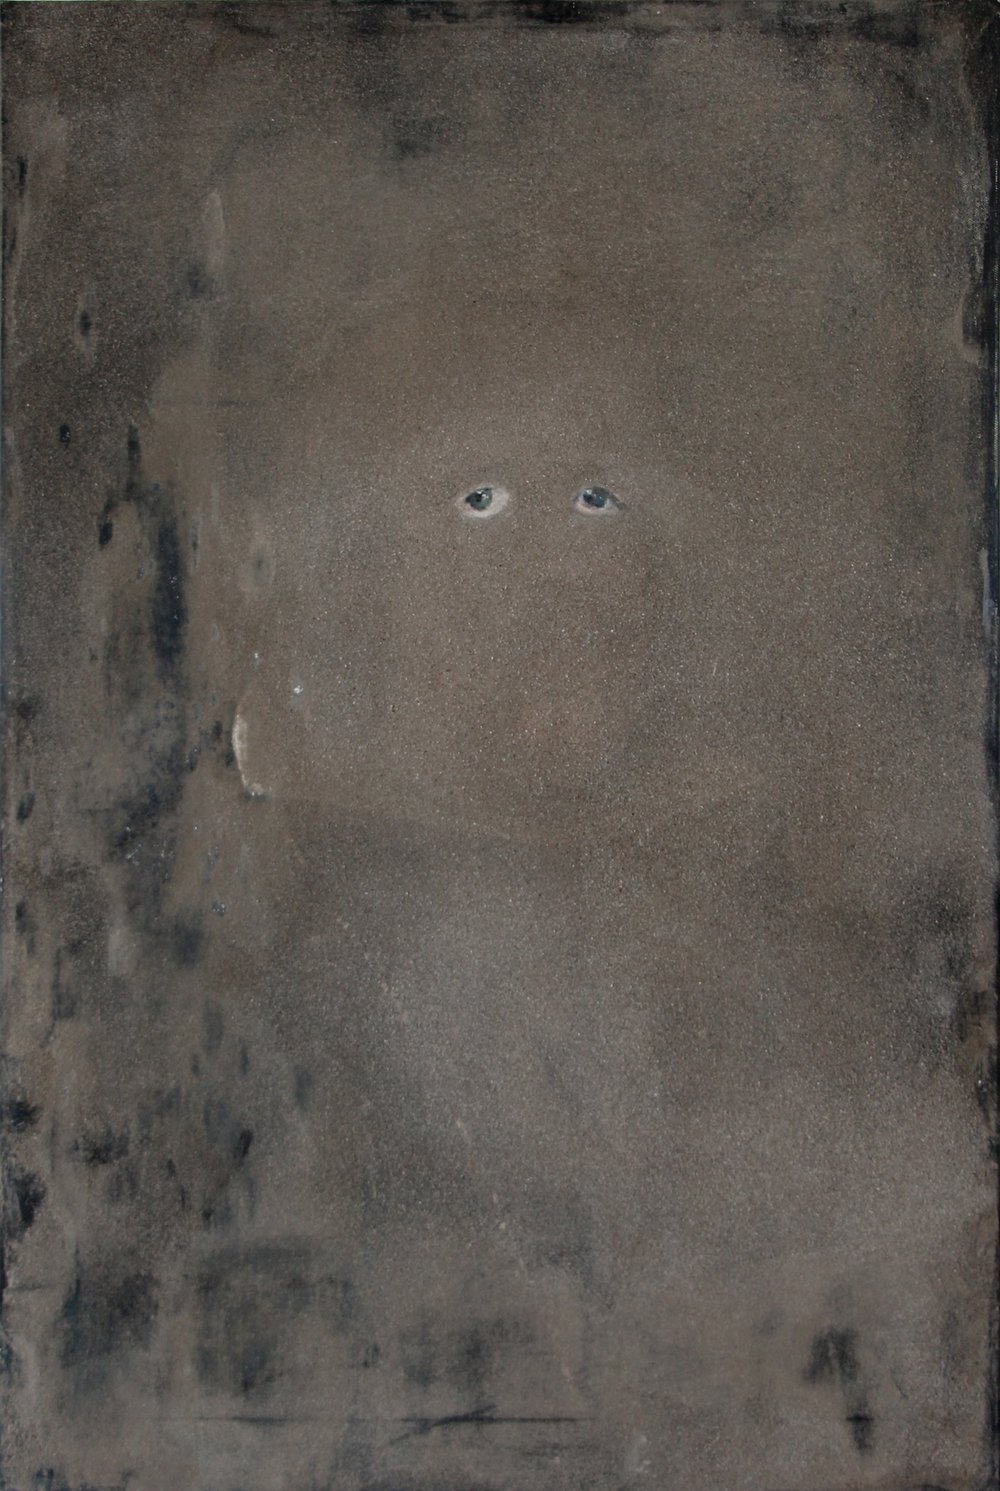 Pablo Rasgado  Monochrome with eyes. After. Philip IV. , 2014 dust on oil on canvas, 79 x 56 cm